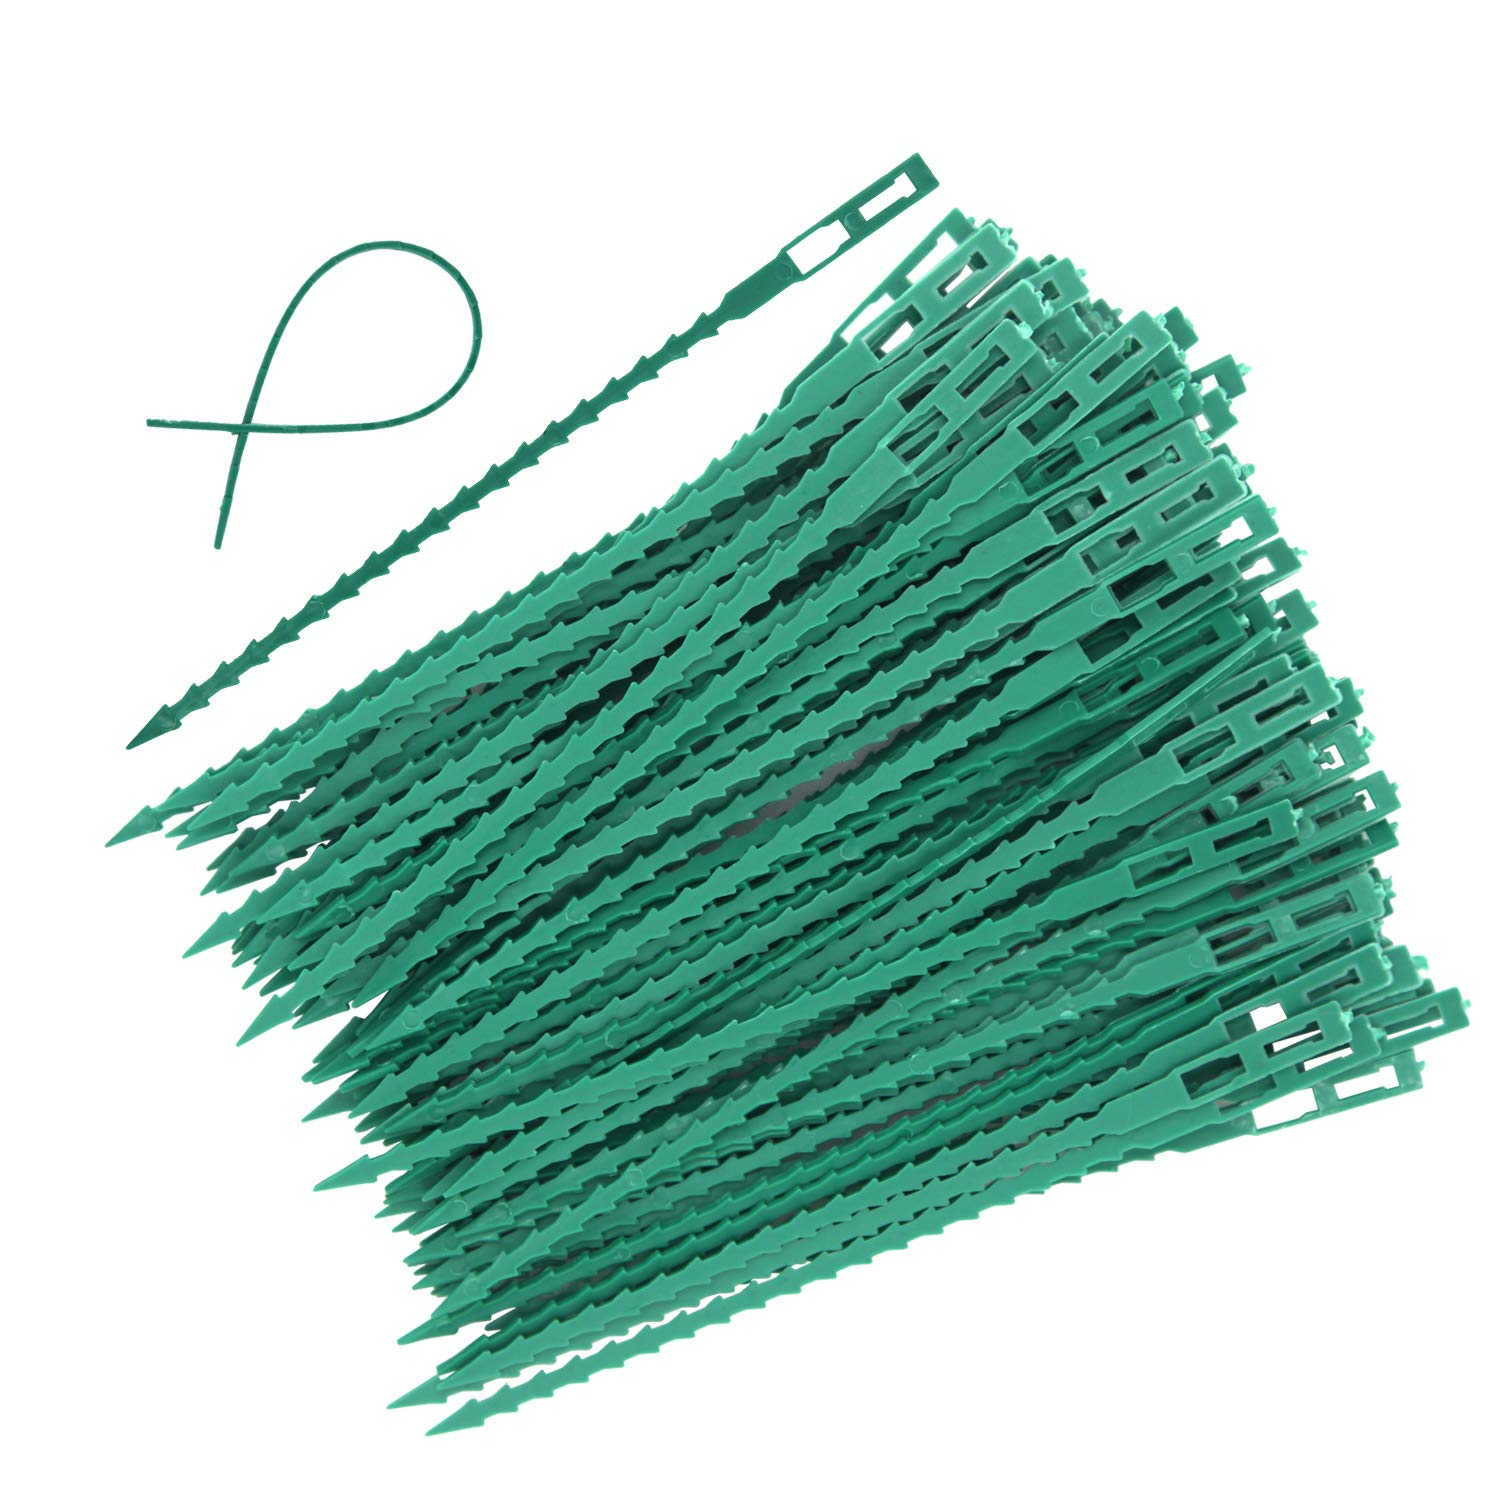 EuTengHao 100 Pieces Adjustable Garden Plant Twist Ties, 6.7 Inch Flexible Plastic Twist Ties Multi-Use for Secure Vine (Green)